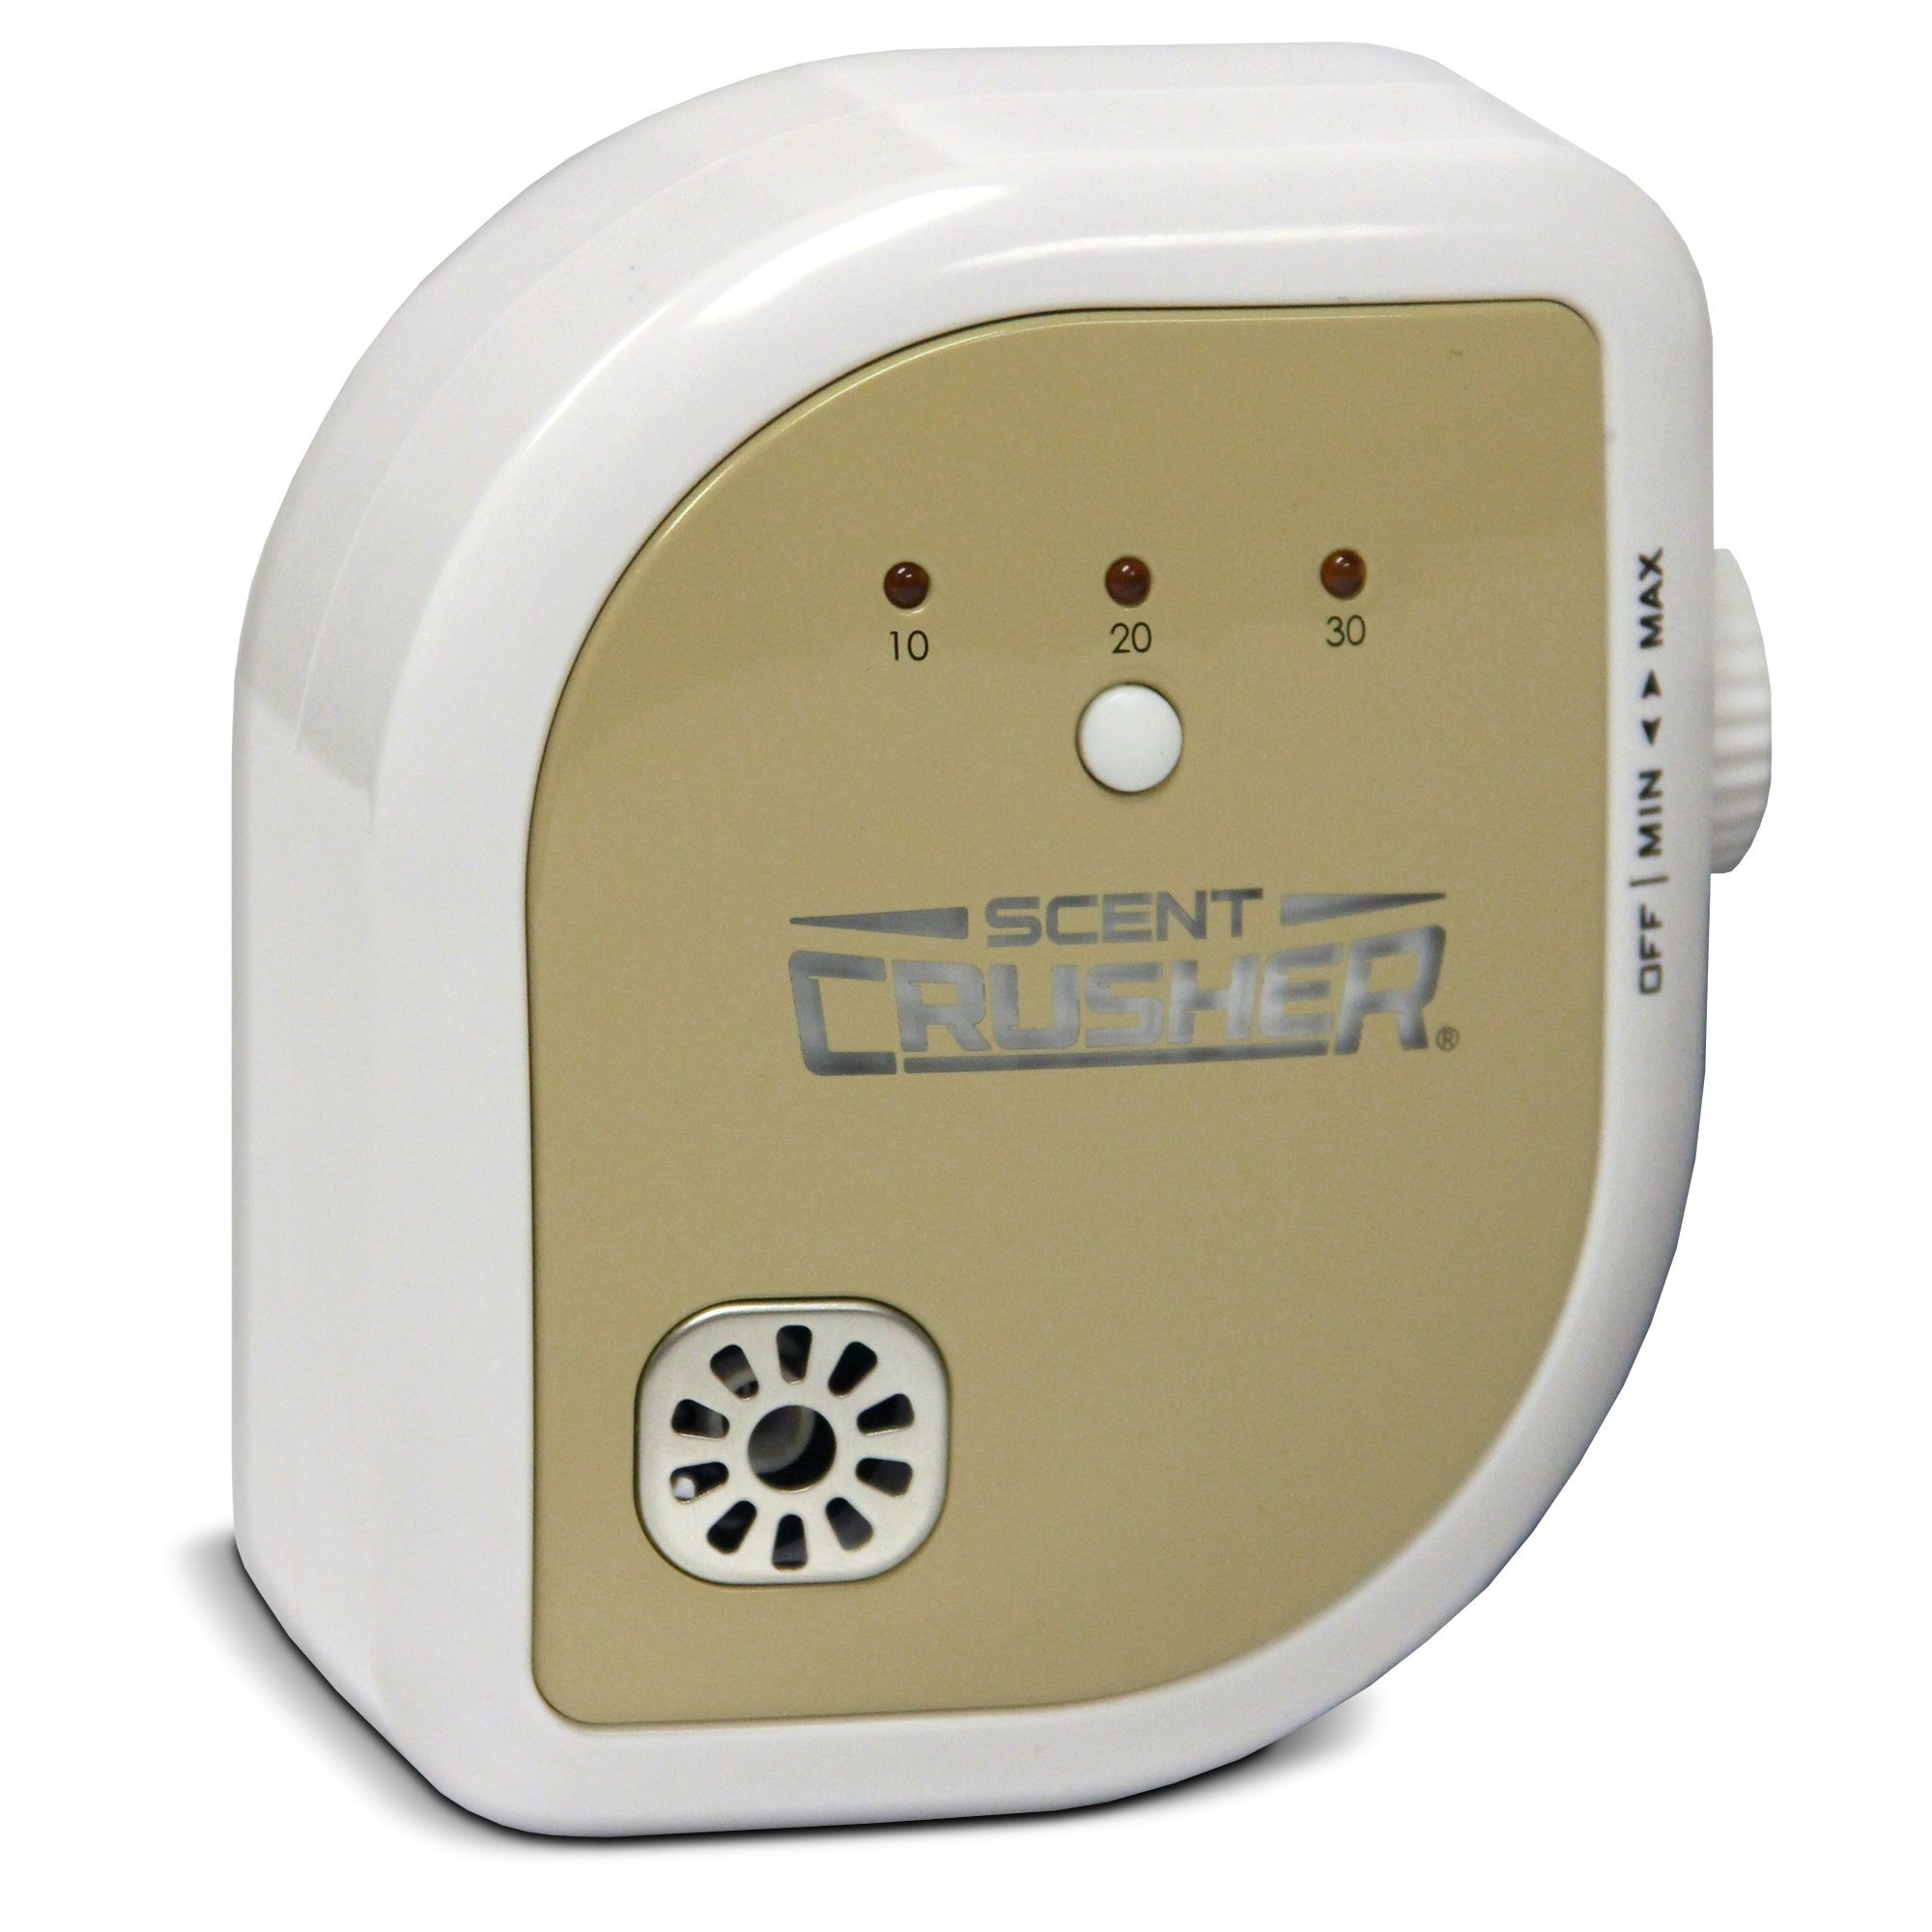 Scent Crusher Room Clean Plug-In Unit, Eliminates Odor, Kills Bacteria, for Home, Cabin, RV in 30 Minutes